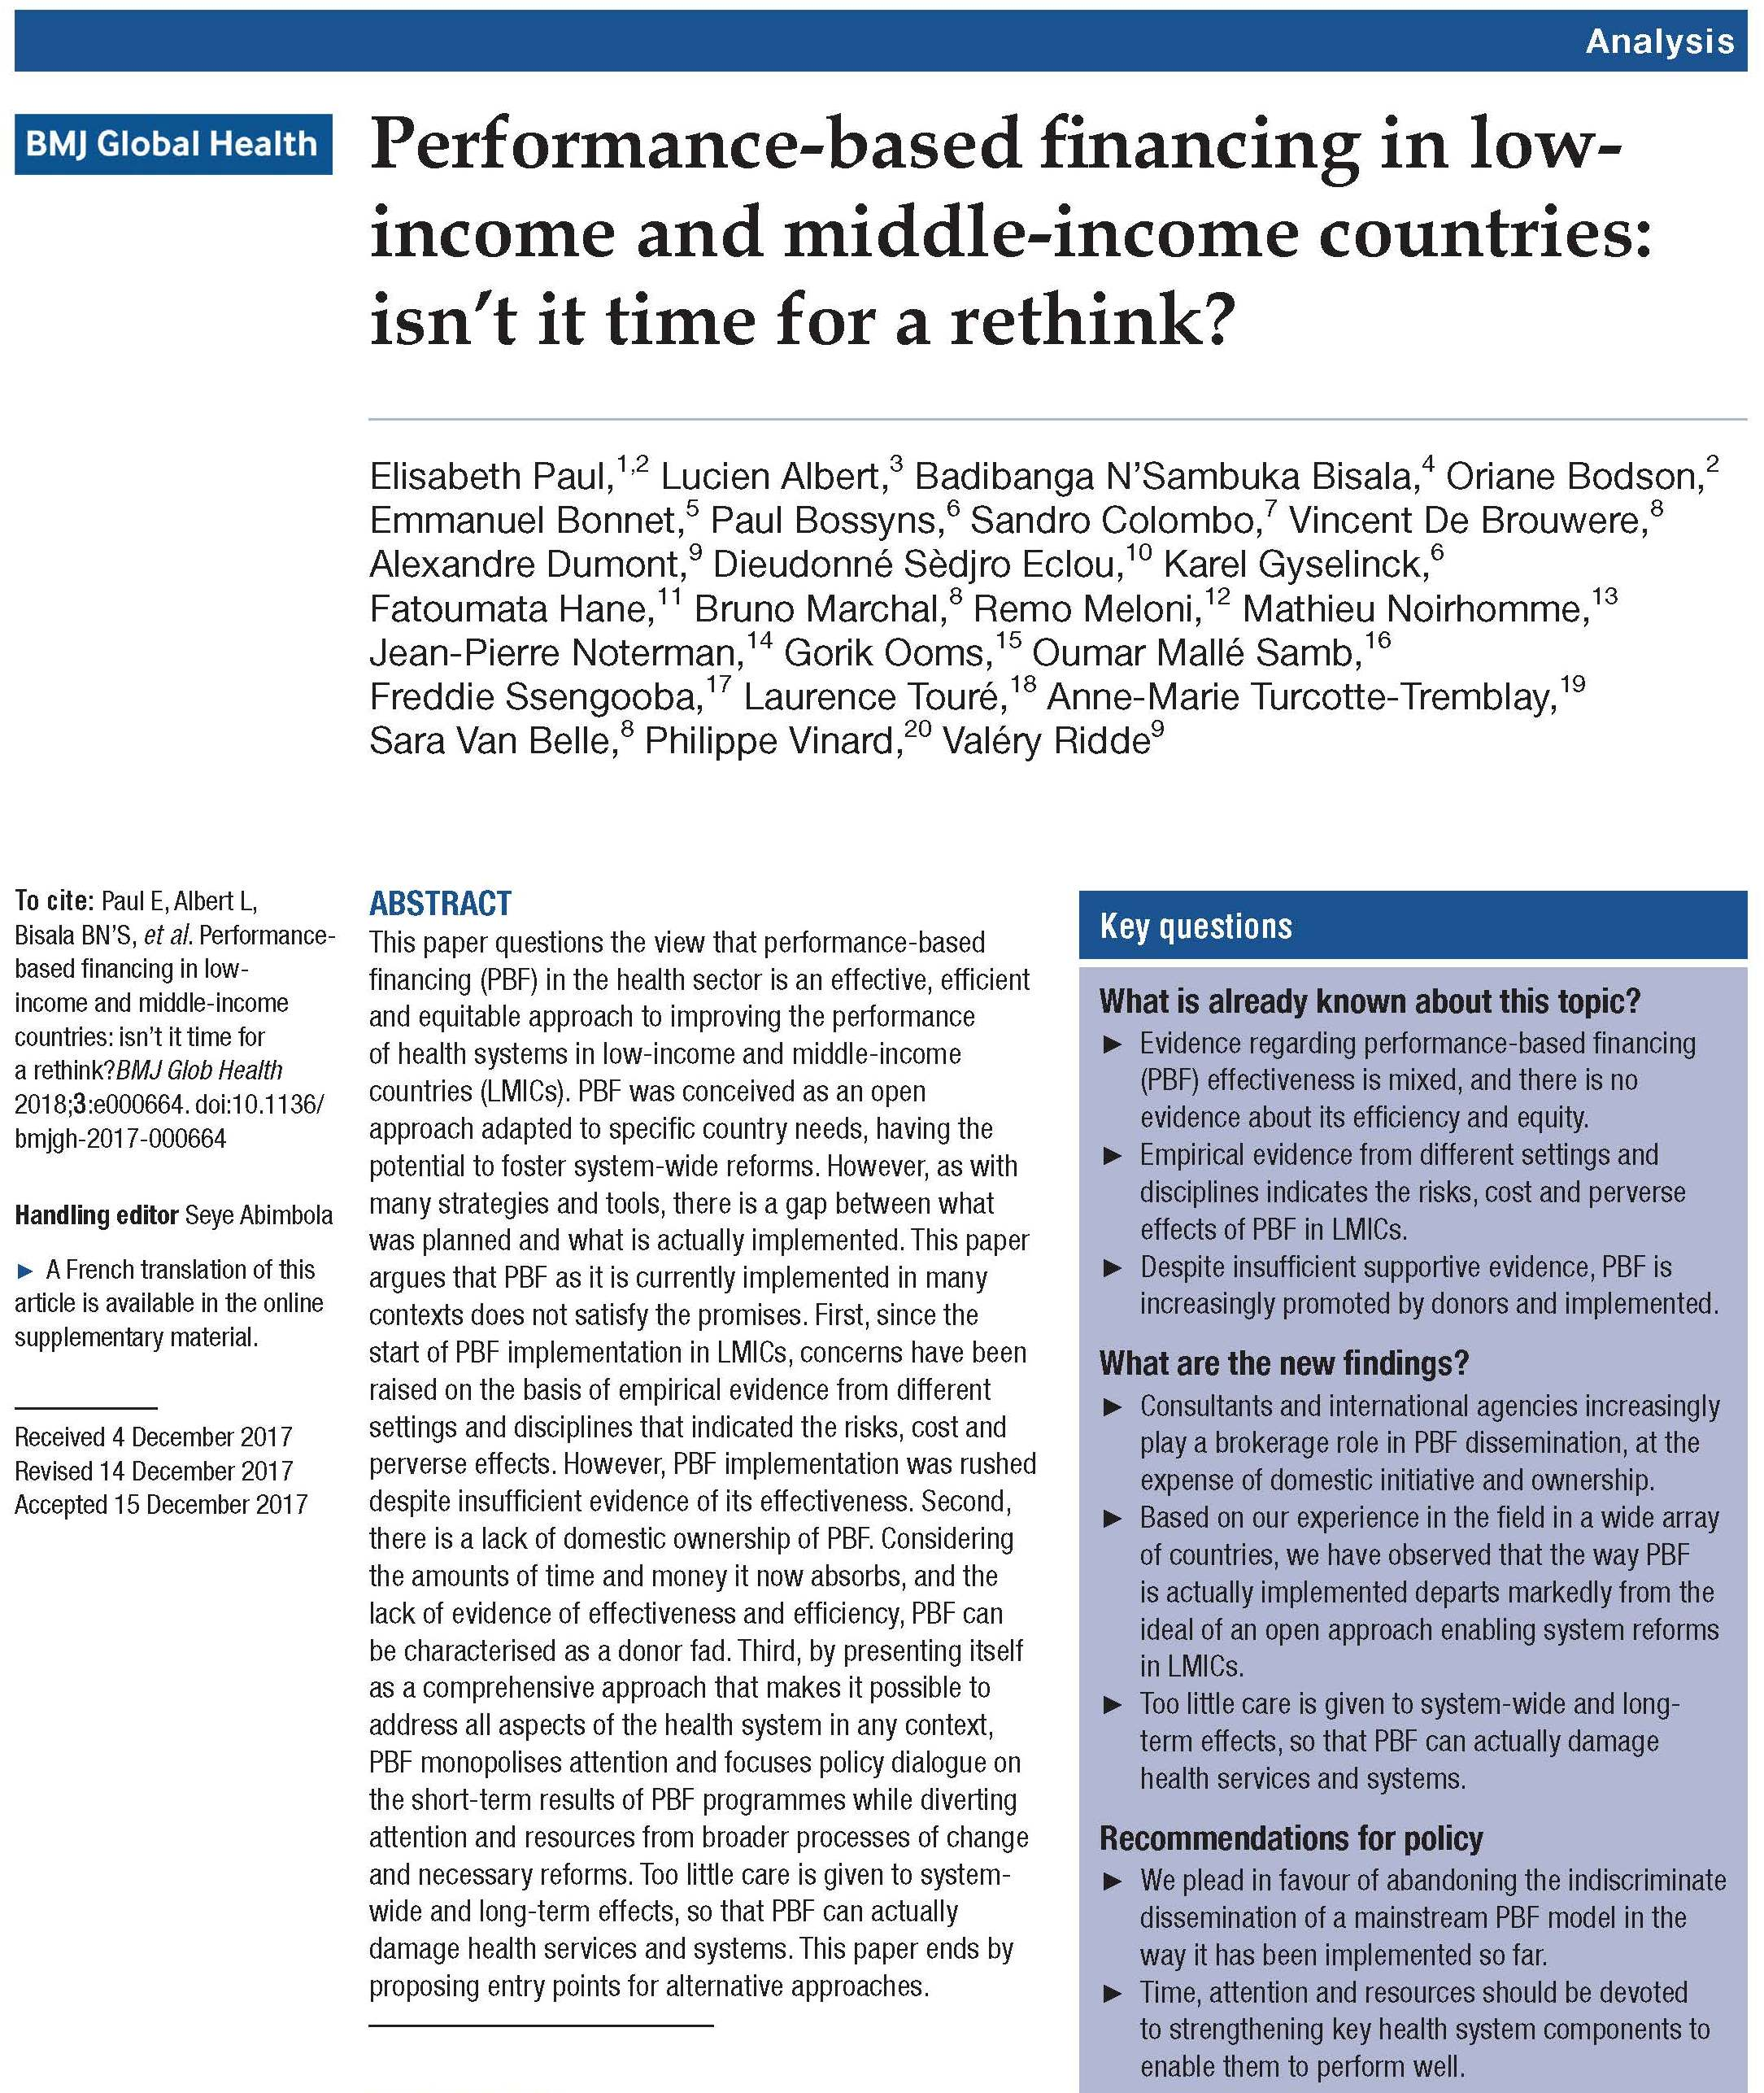 Performance-based financing in low-income and middle-income countries: isn't it time for a rethink?